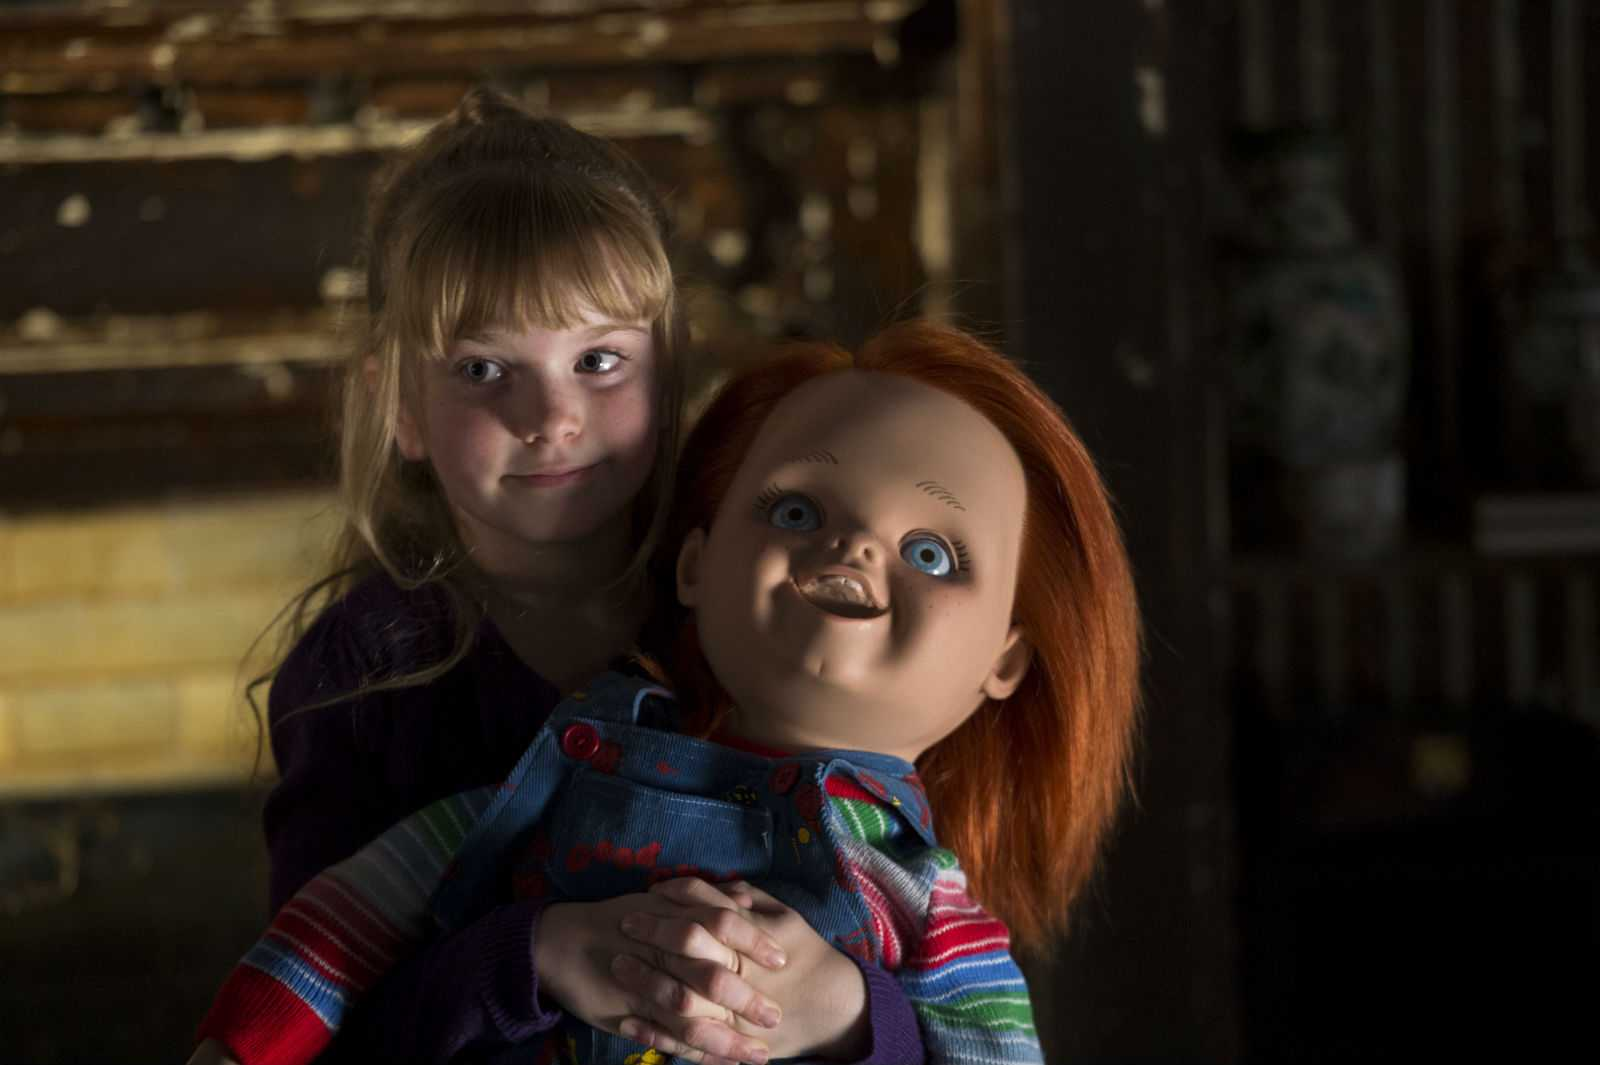 Wanna Play Again? Chucky Makes A Lackluster Return In